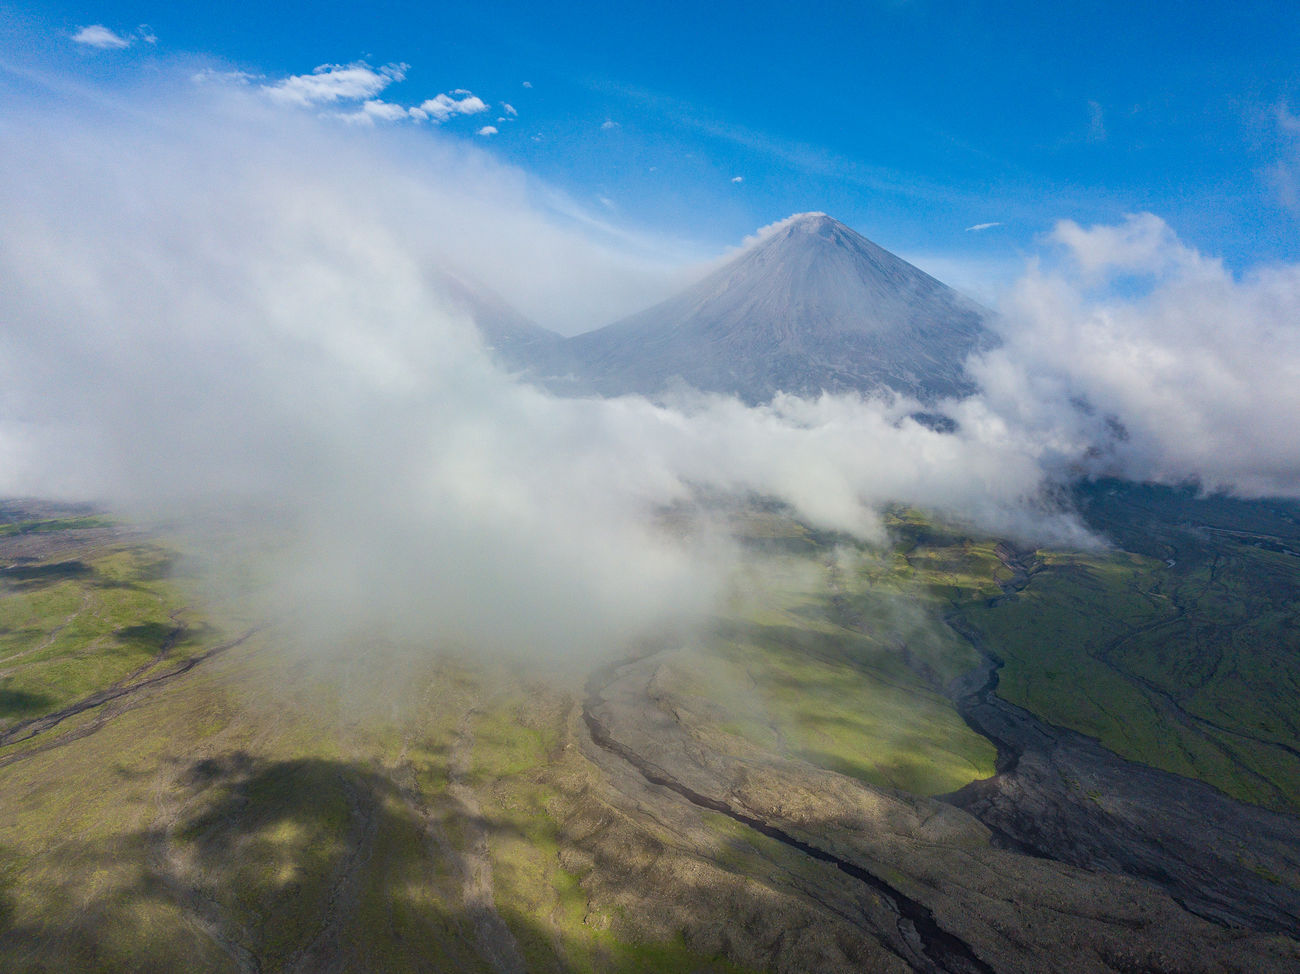 landscape, mountain, volcanic landscape, volcano, physical geography